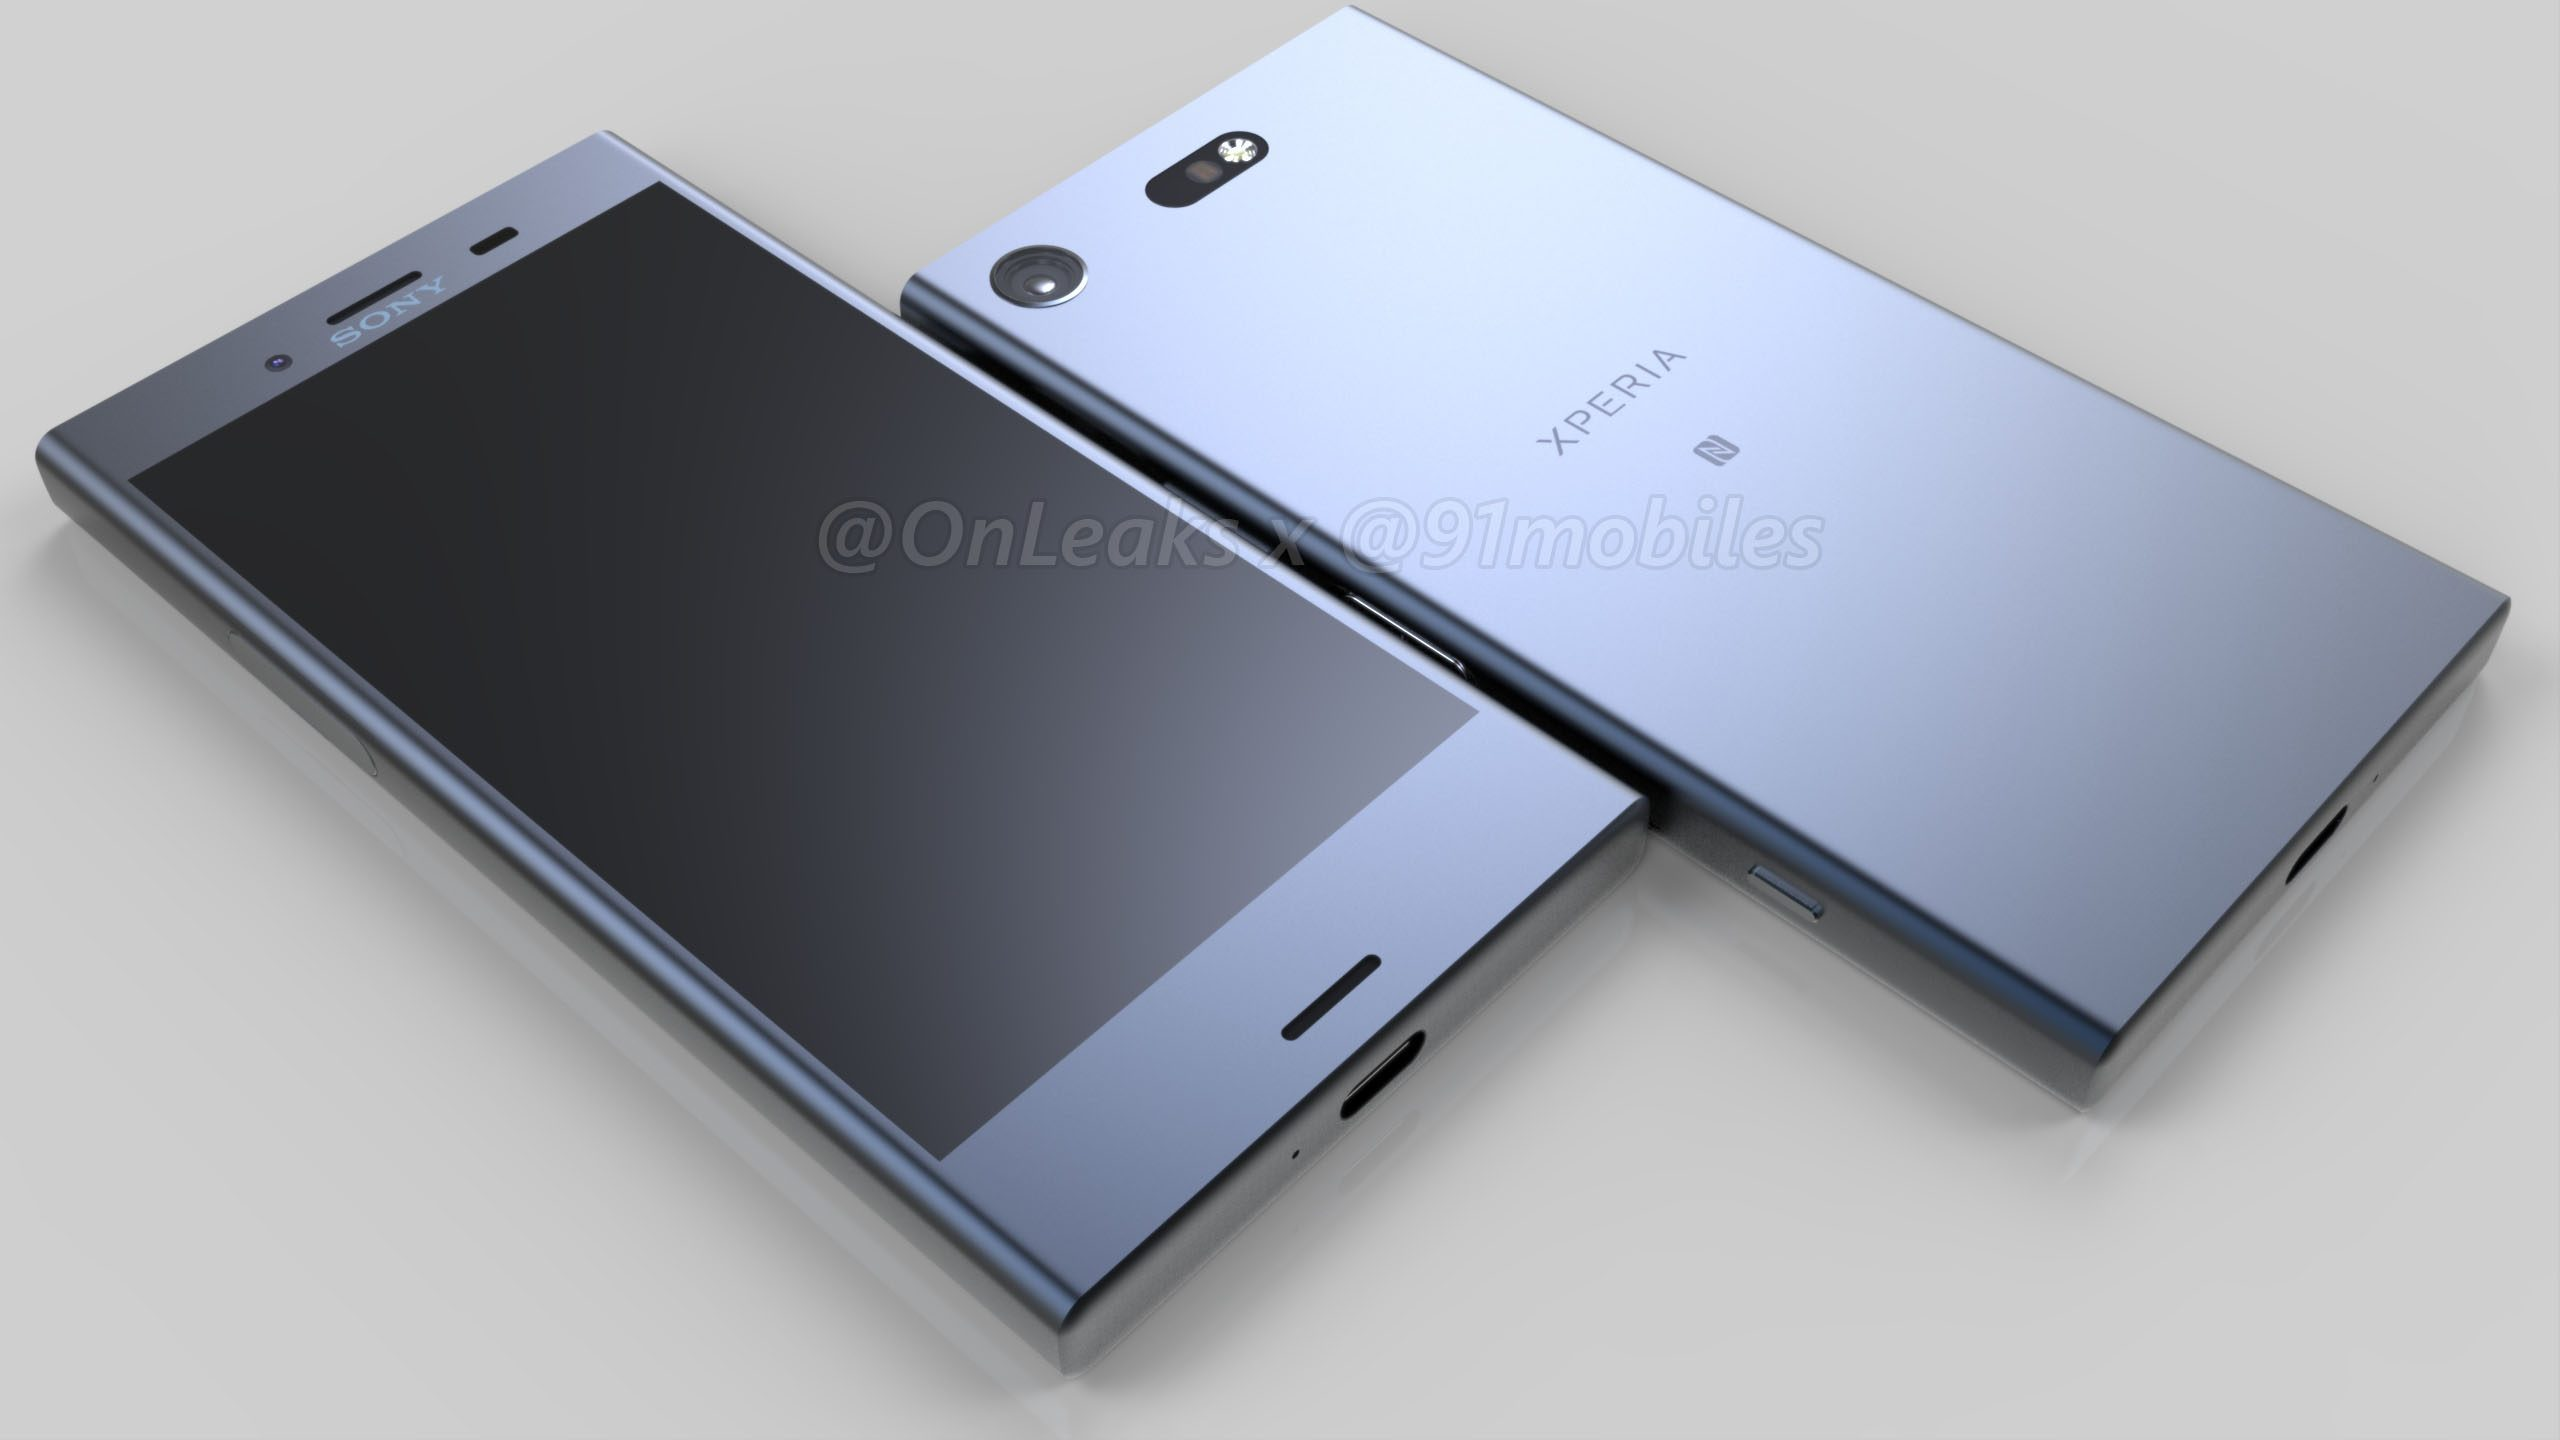 Sony Xz1 Compact System Update Sony Xperia Xz1 Compact Device Renders And Specs Reveal A